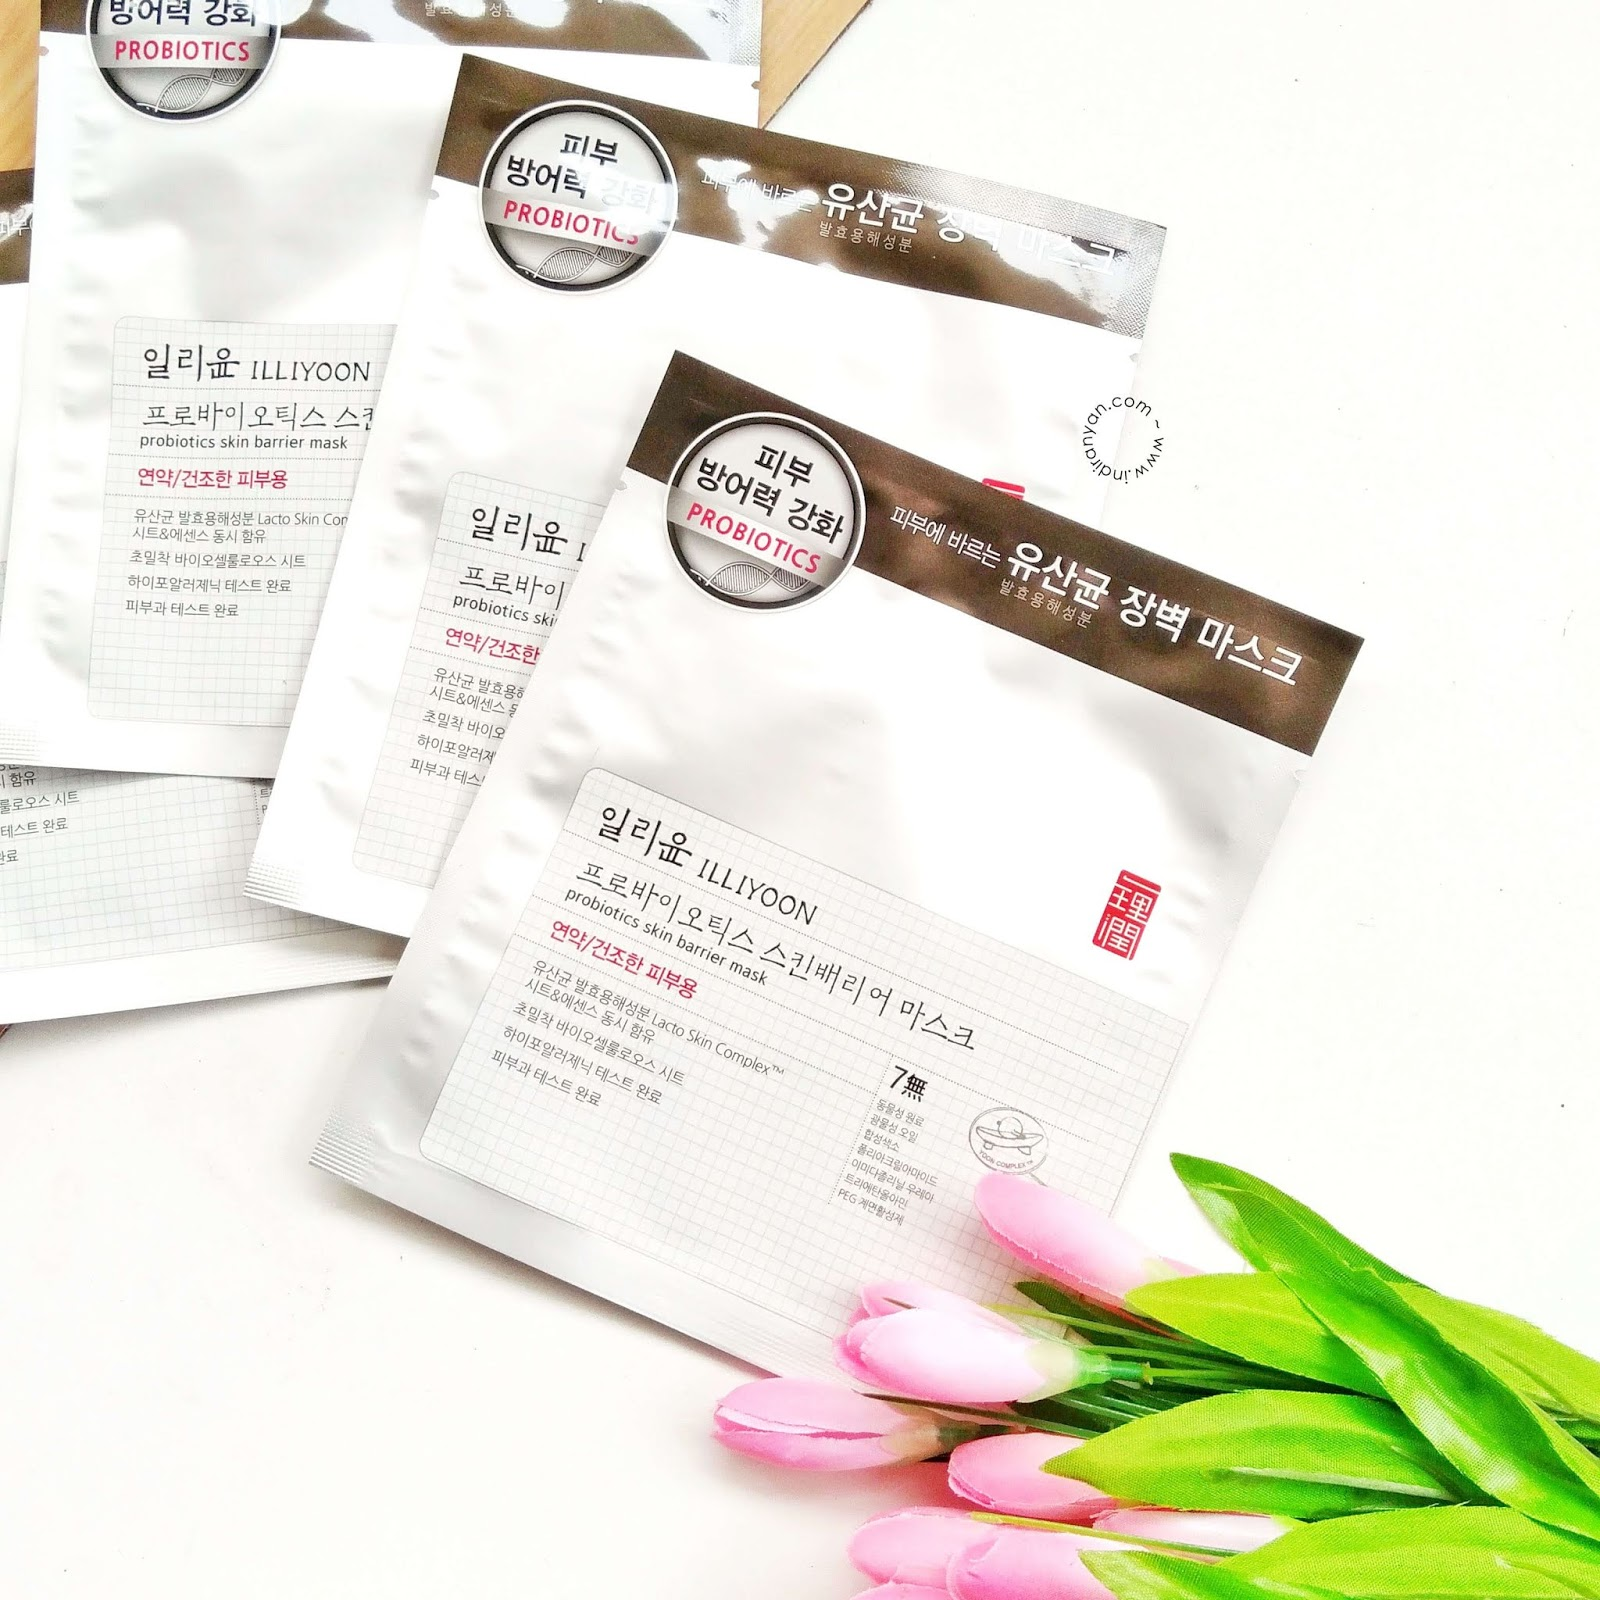 illiyoon-probiotics-skin-barrier-mask